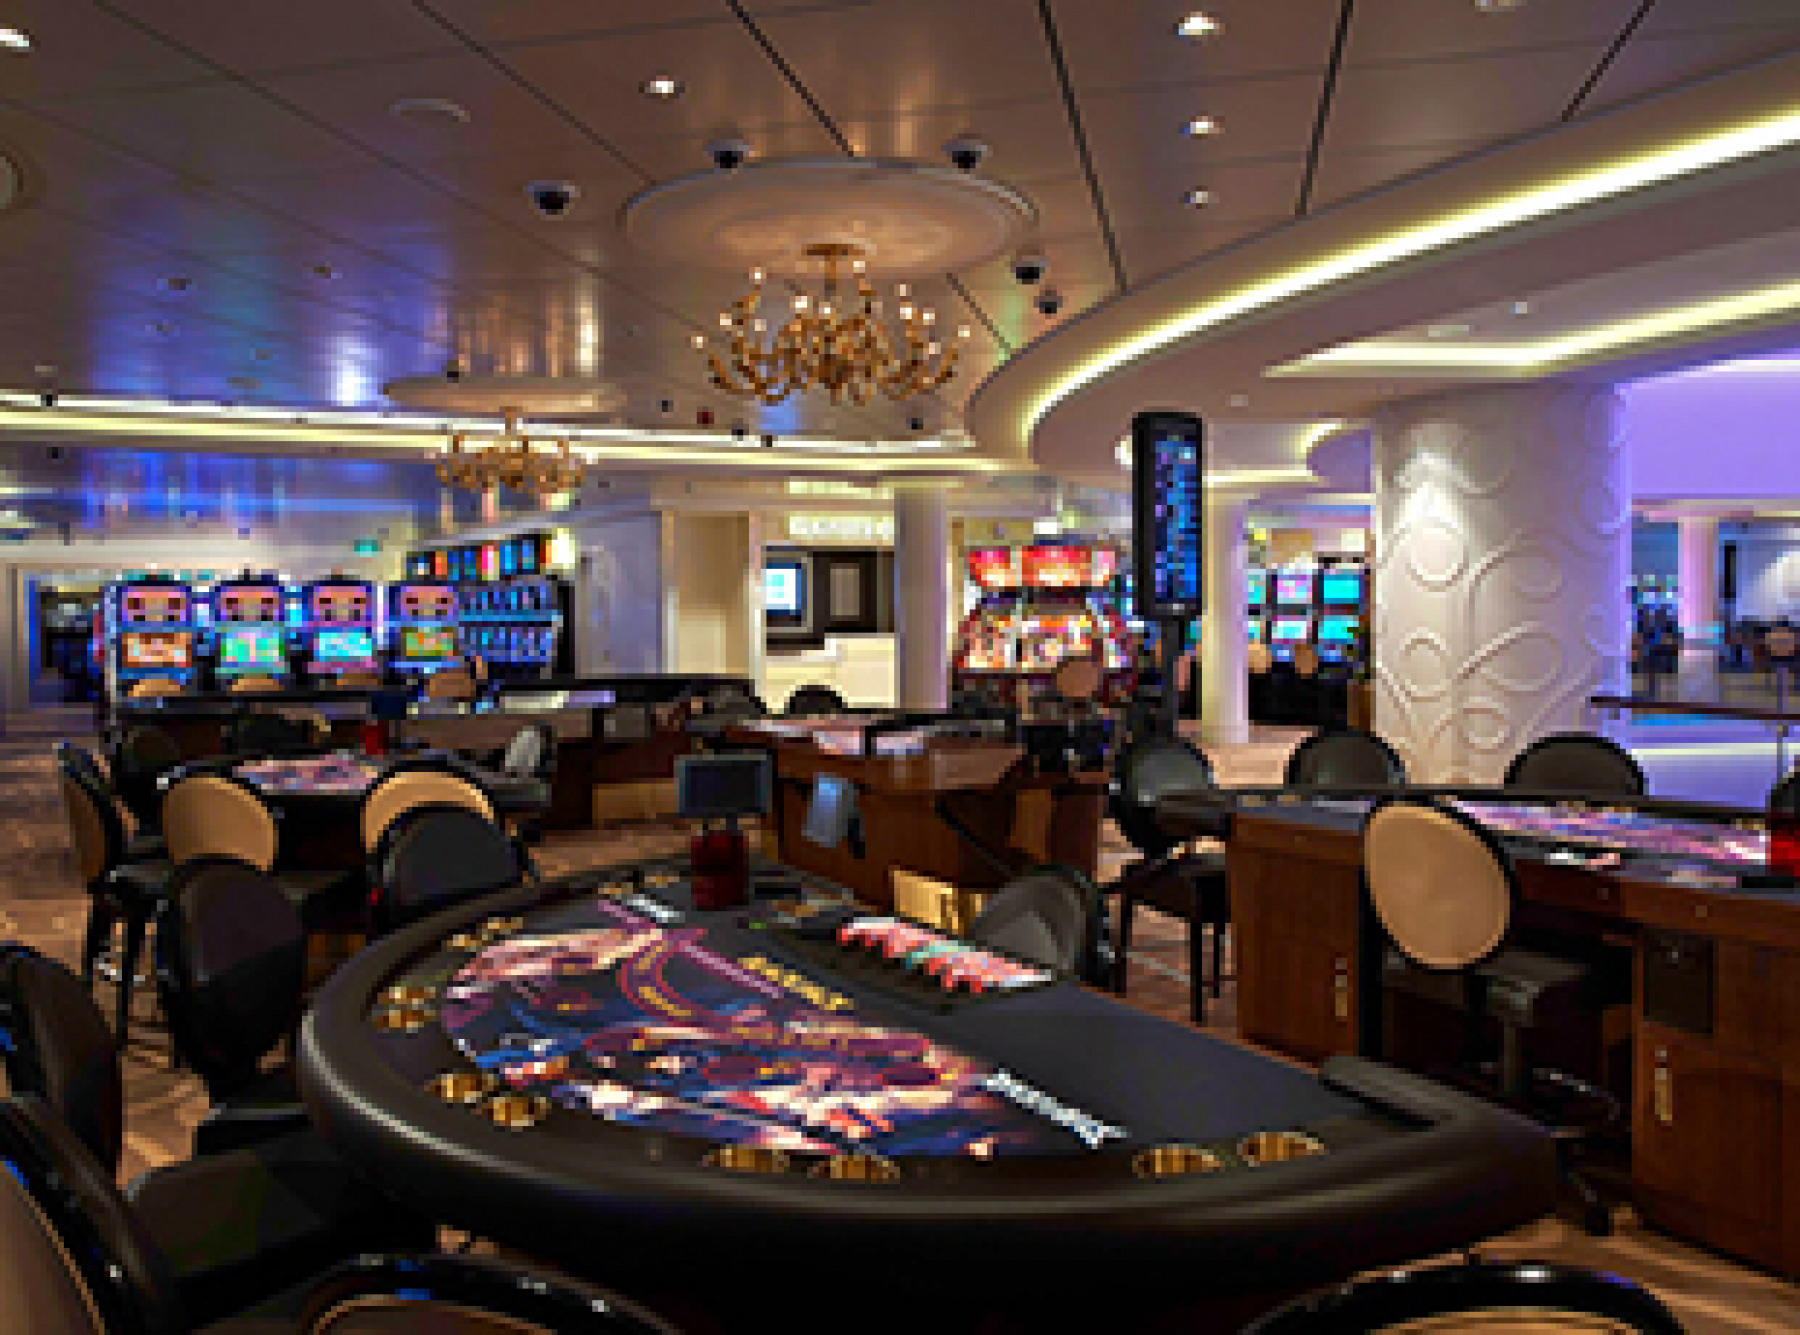 Norwegian Cruise Line Norwegian Breakaway Interior Casino.jpg